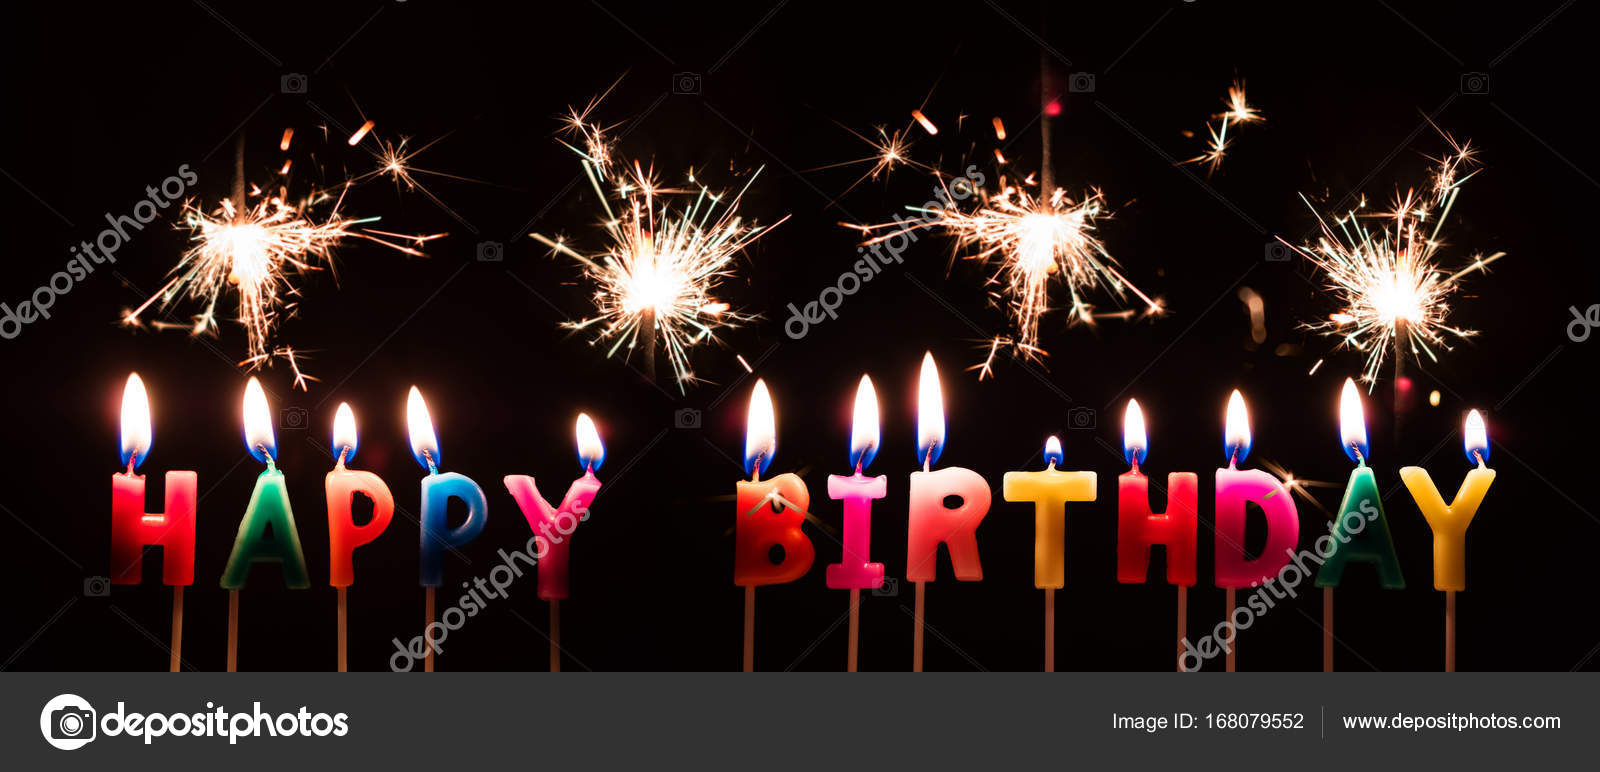 Colorful Happy Birthday Candles With Sparkler Fireworks On Black Background Stock Image